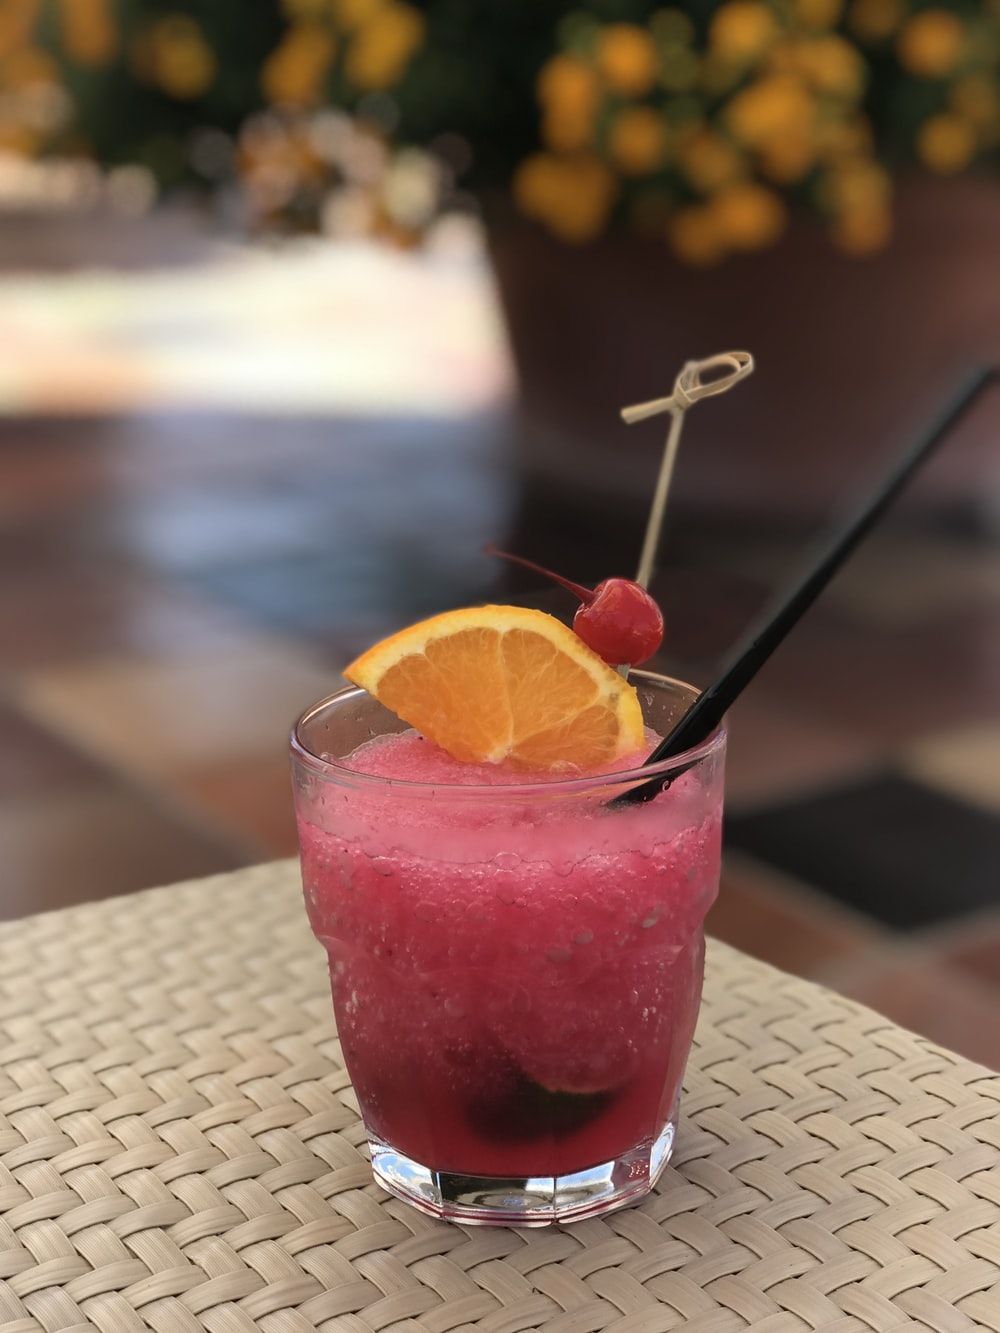 clear drinking glass with pink liquid and sliced orange fruit